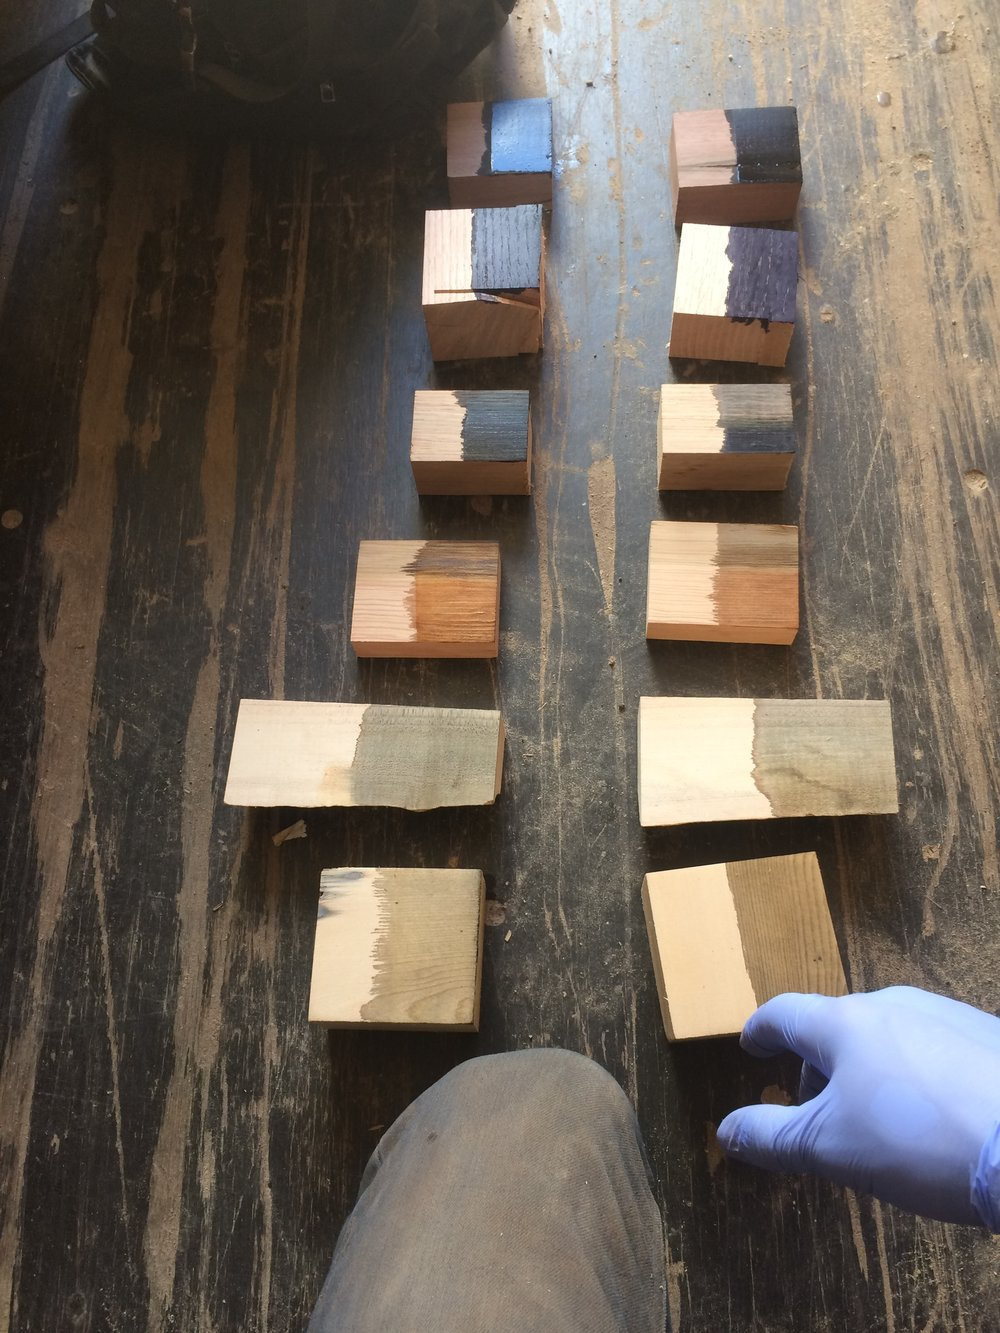 Testing on walnut, red oak, white oak, yellow pine, maple, white pine - take your pick!